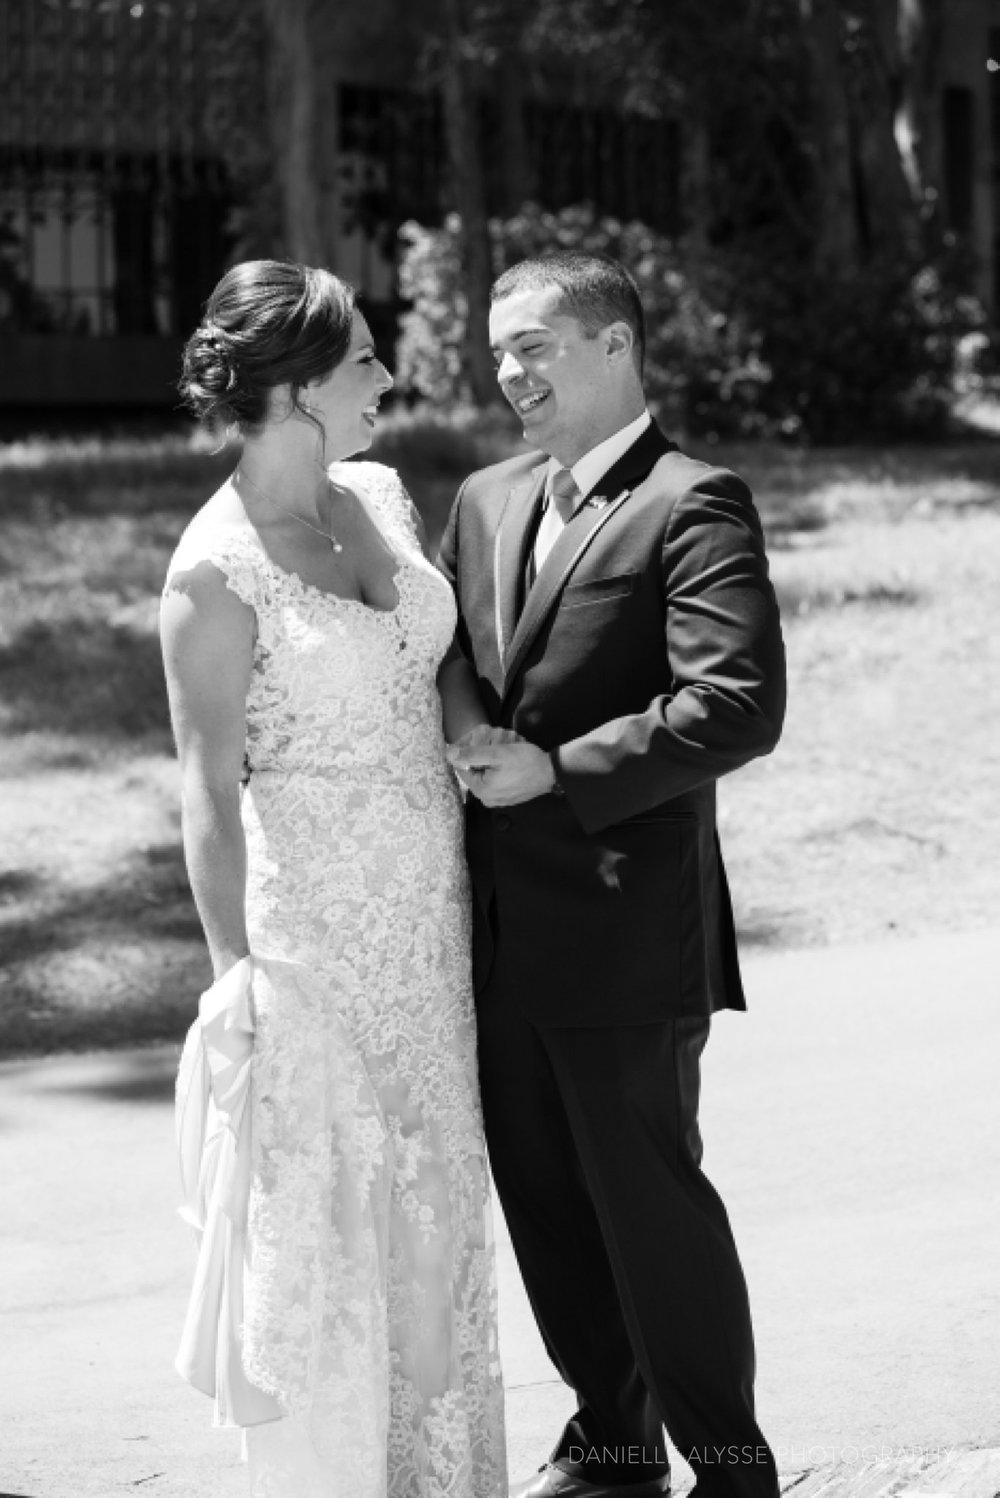 170429_blog_kimberly_ben_wedding_san_mateo_curiodyssey_danielle_alysse_photography_sacramento_photographer0182_WEB.jpg